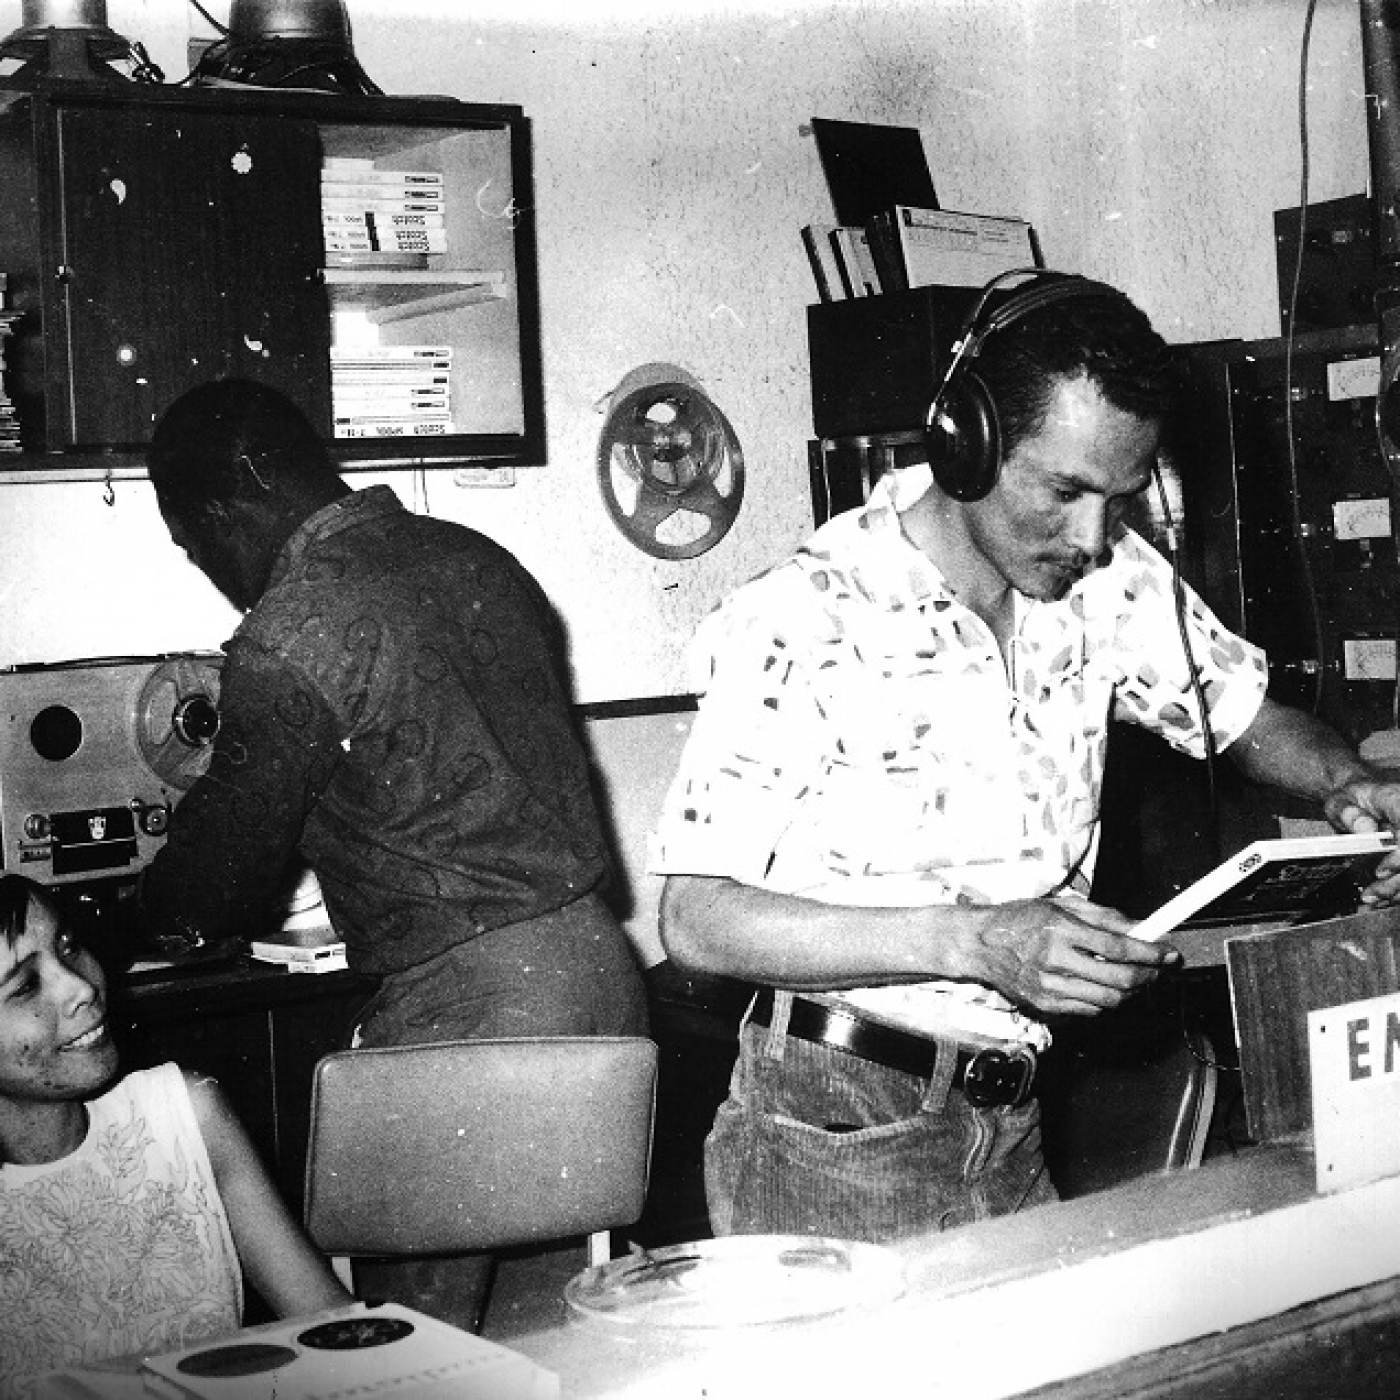 Patricia and Vincent Chin in Studio 17, 17 North Parade, Kingston, ca. 1968